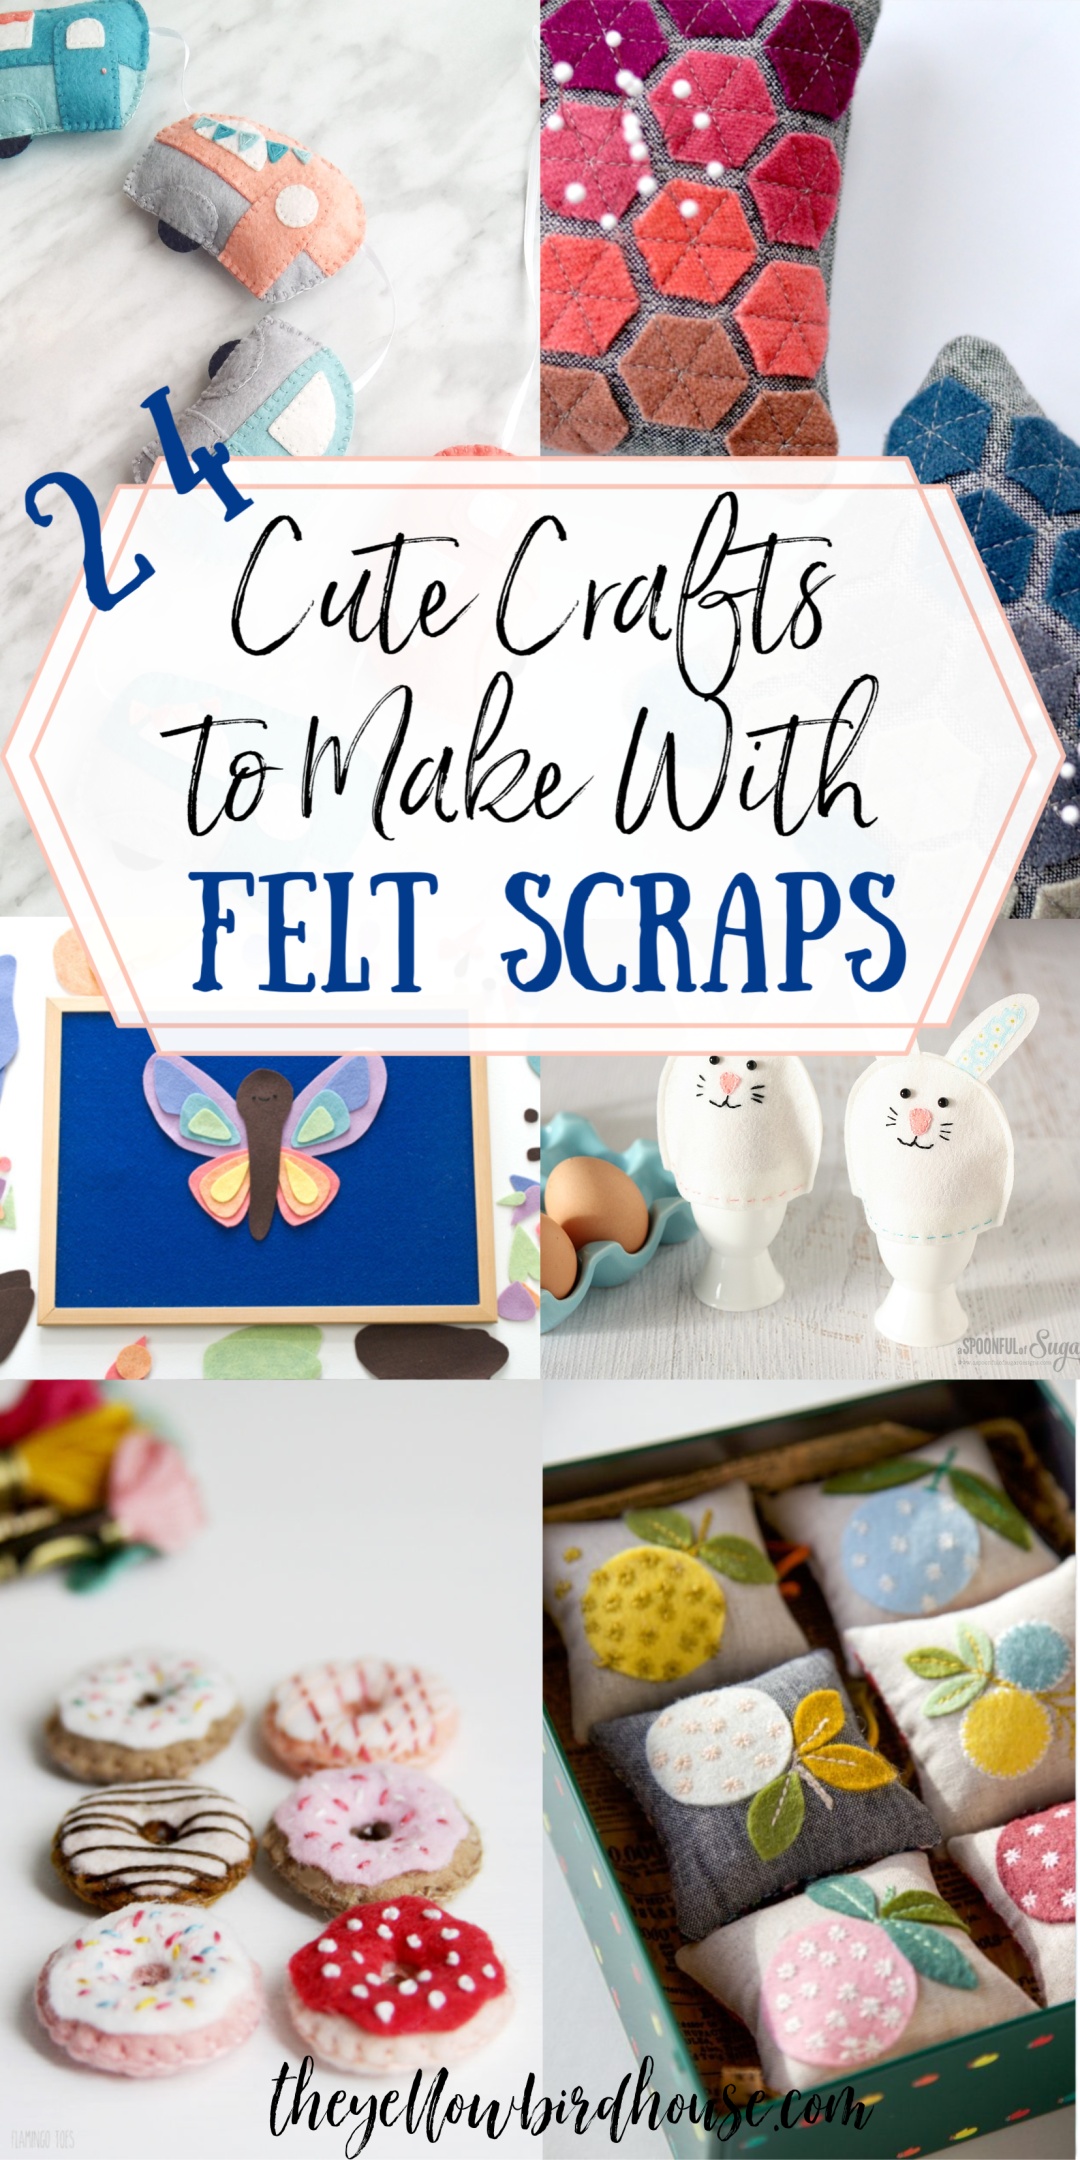 24+ Cute Crafts to Make with Felt Scraps | The Yellow Birdhouse -   23 fabric crafts for kids to make ideas